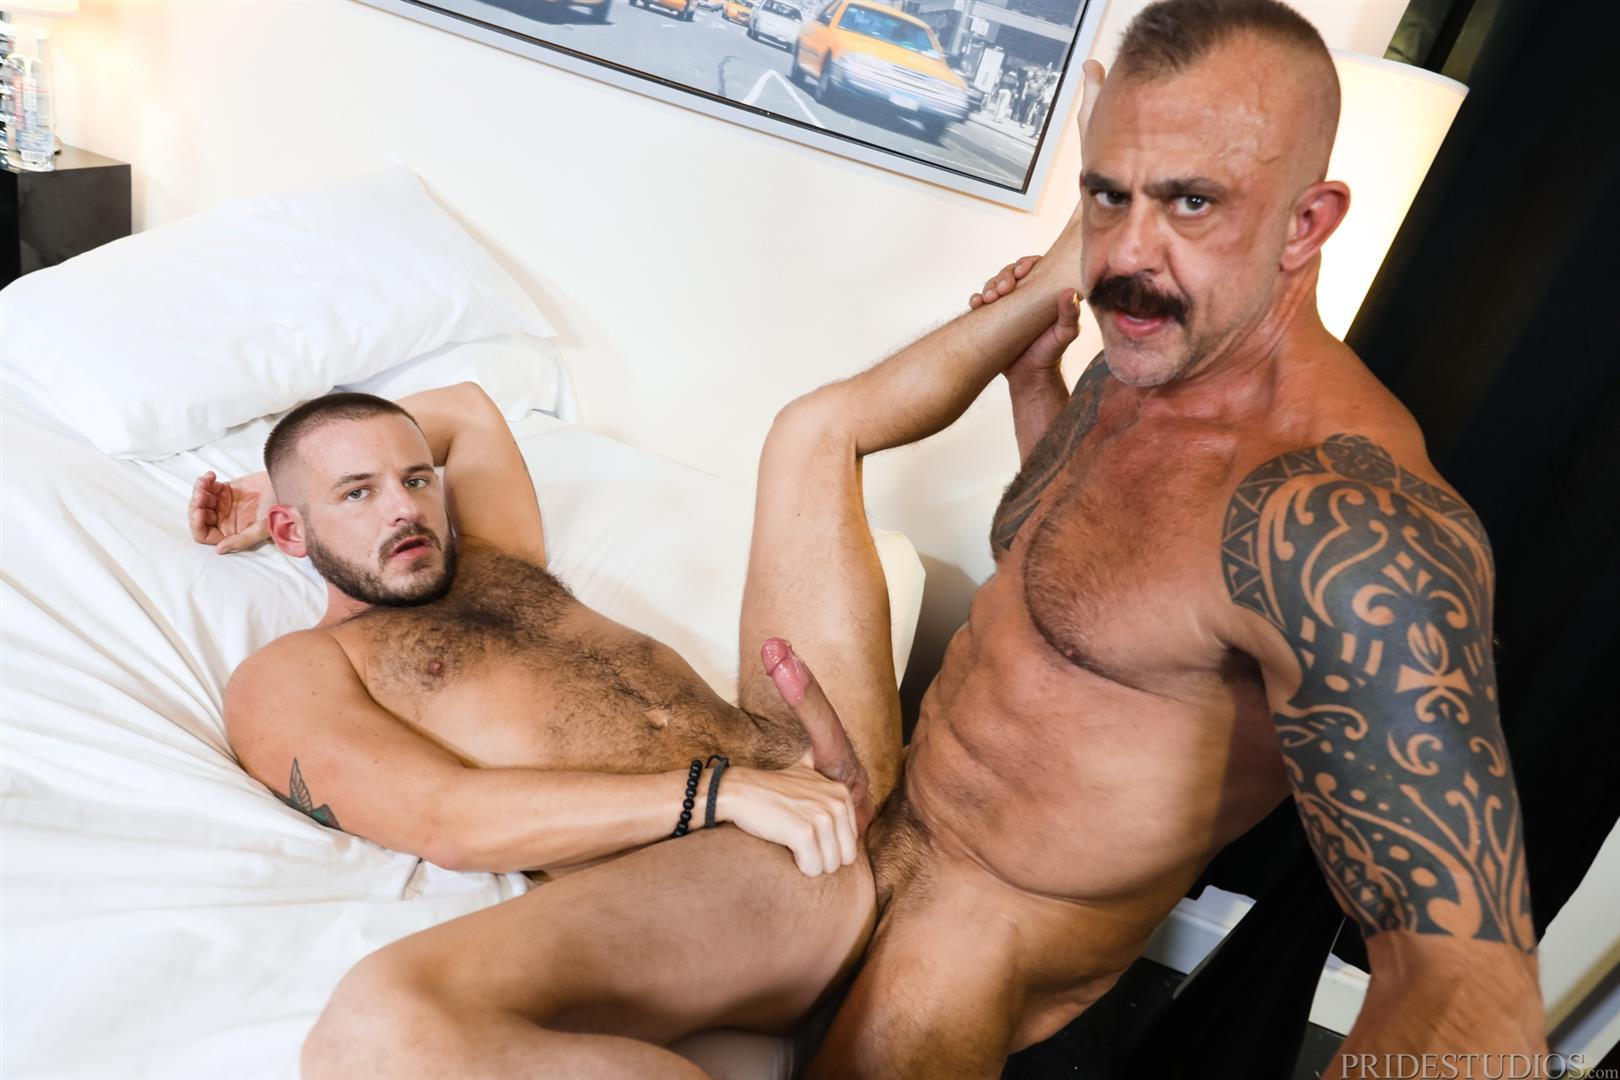 Men-Over-30-Jon-Galt-and-Sean-Harding-Muscle-Daddy-Barebacking-Muscle-Cub-15 Muscle Daddy Jon Galt And Muscle Cub Sean Harding Bareback Flipping